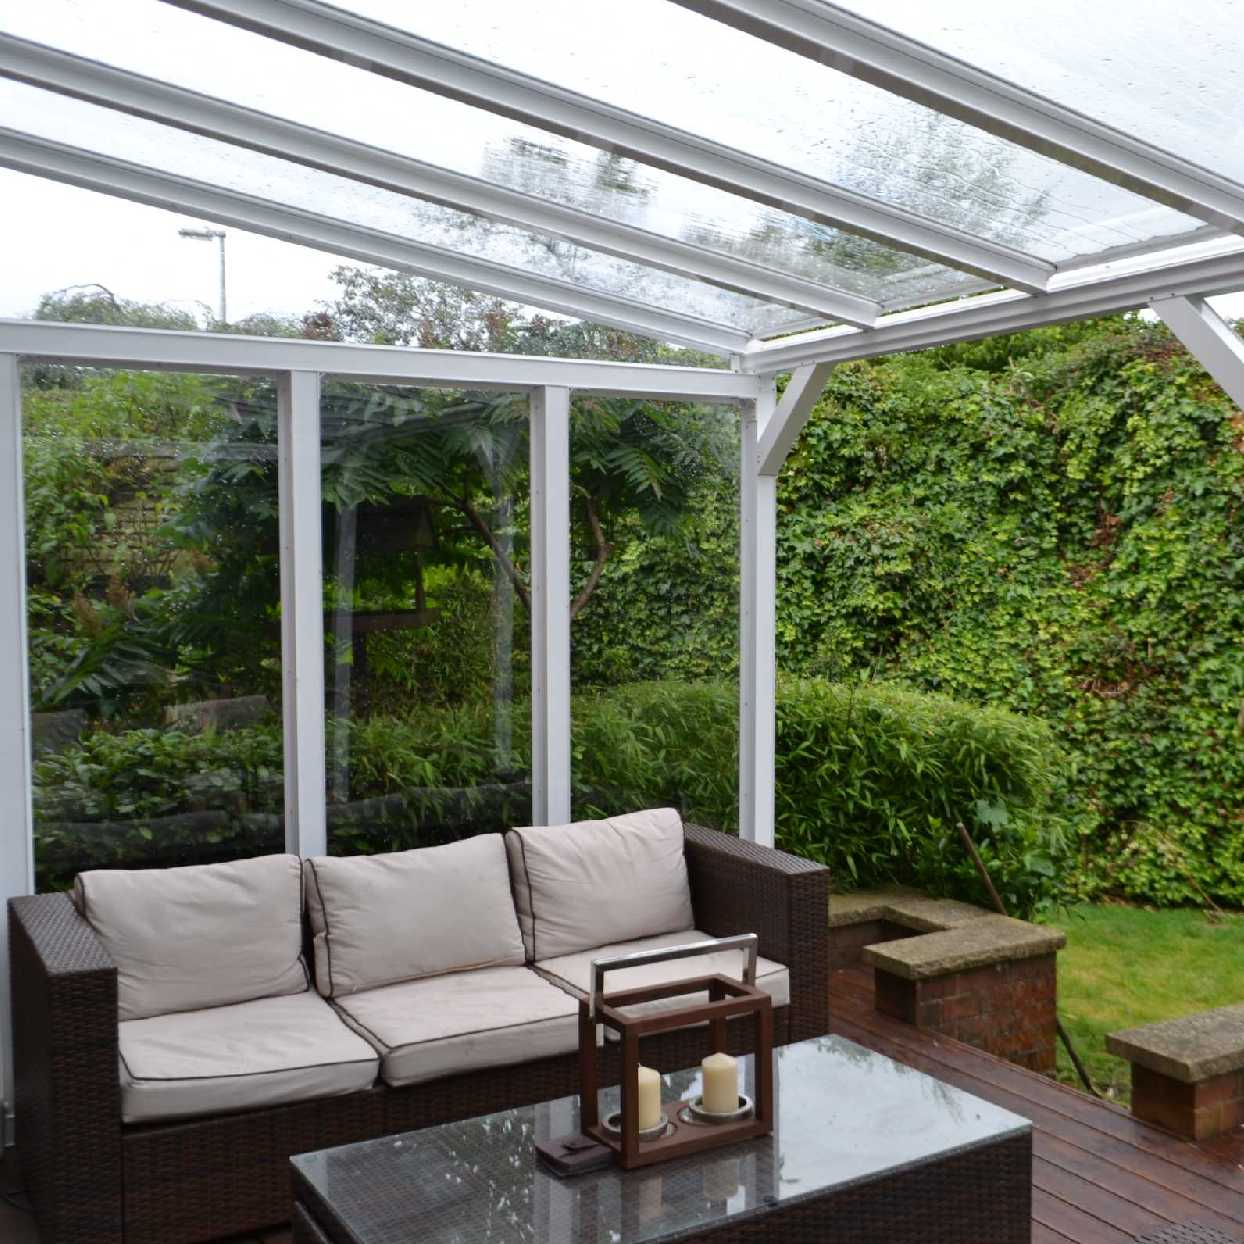 Great selection of Omega Smart Lean-To Canopy with 16mm Polycarbonate Glazing - 10.6m (W) x 1.5m (P), (5) Supporting Posts